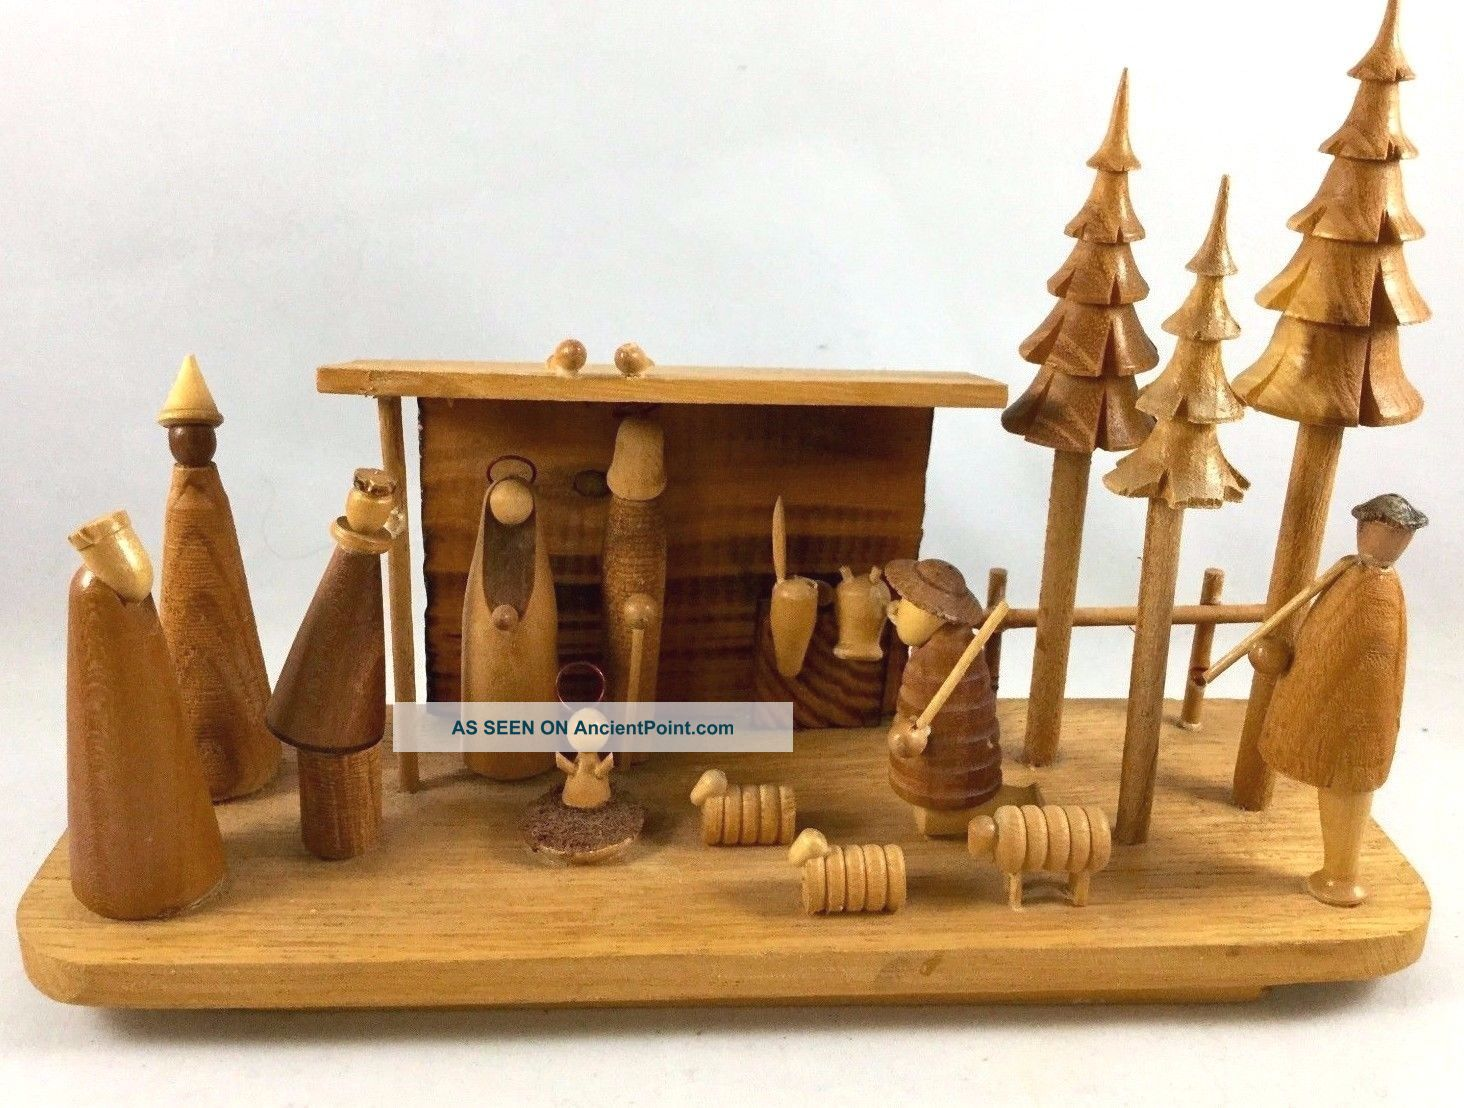 Vintage Hand Made Wood Nativity Scene - Hand Carved Wooden Scene Made In Poland Carved Figures photo